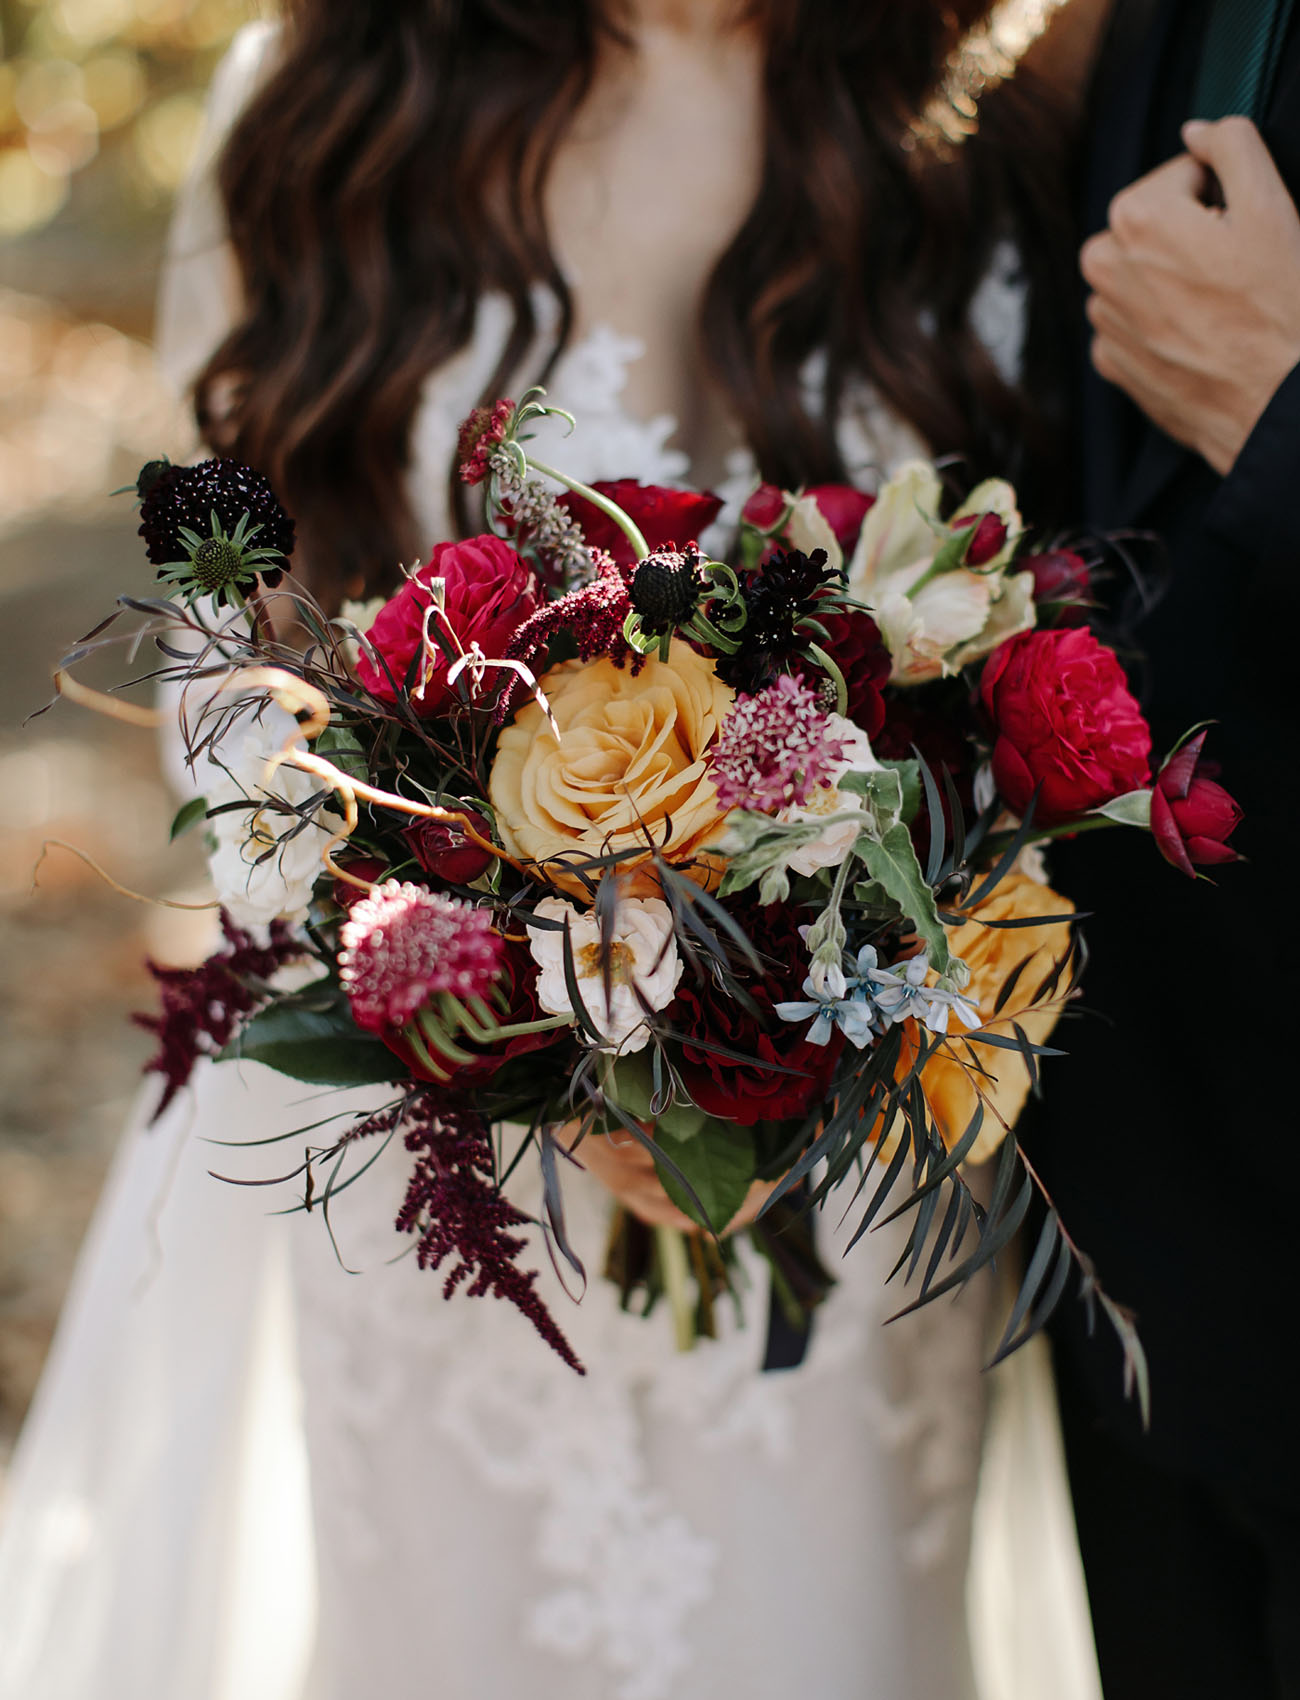 The moody bridal bouquet looked very fall like and fantasy inspired